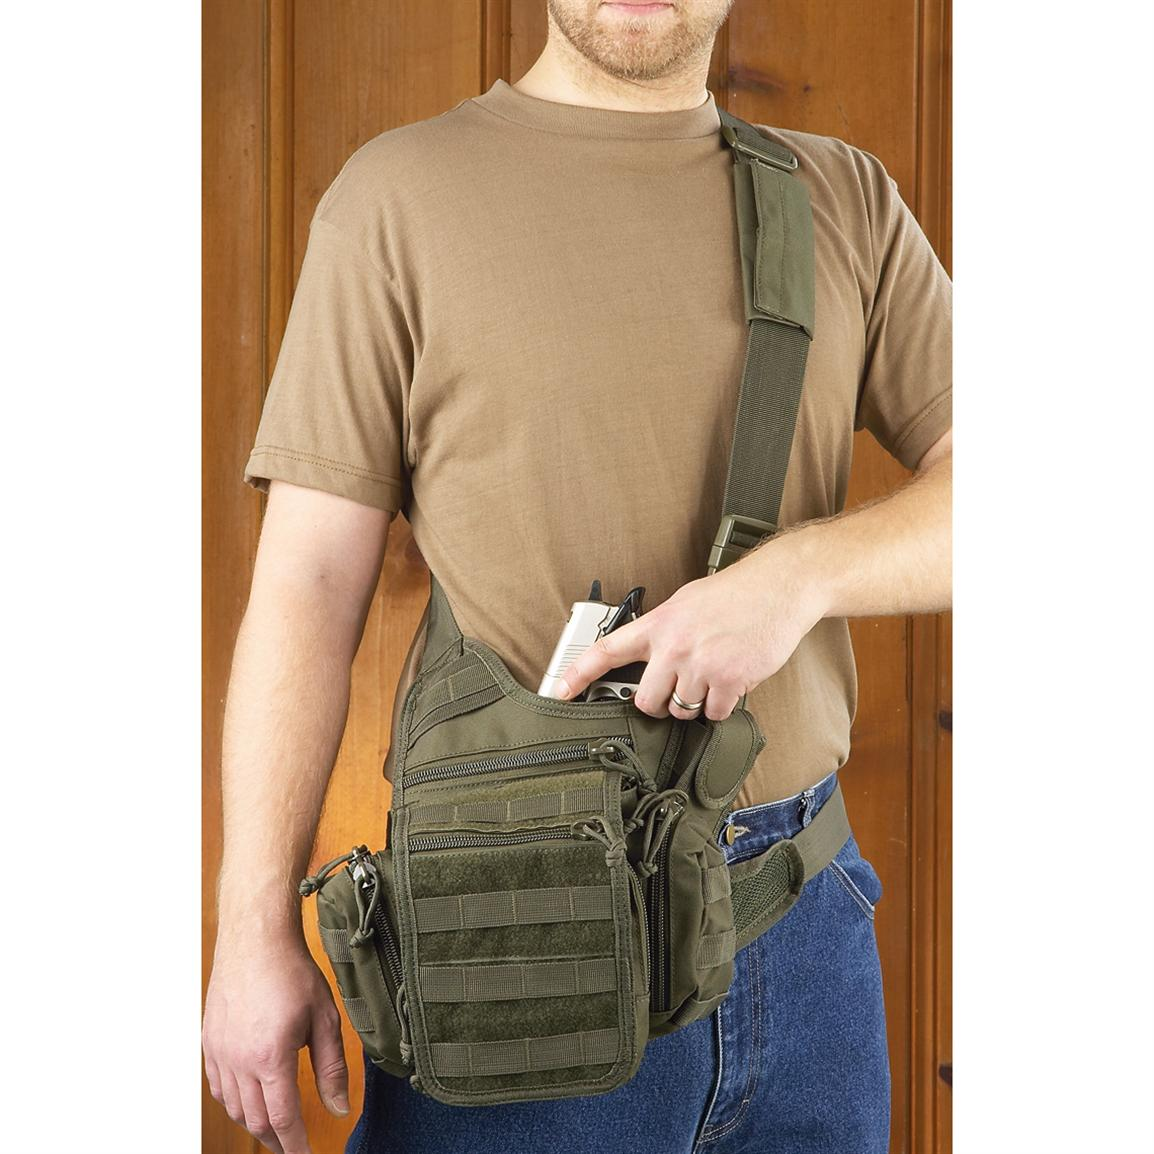 Voodoo Tactical™ Ergo Pack, Olive Drab